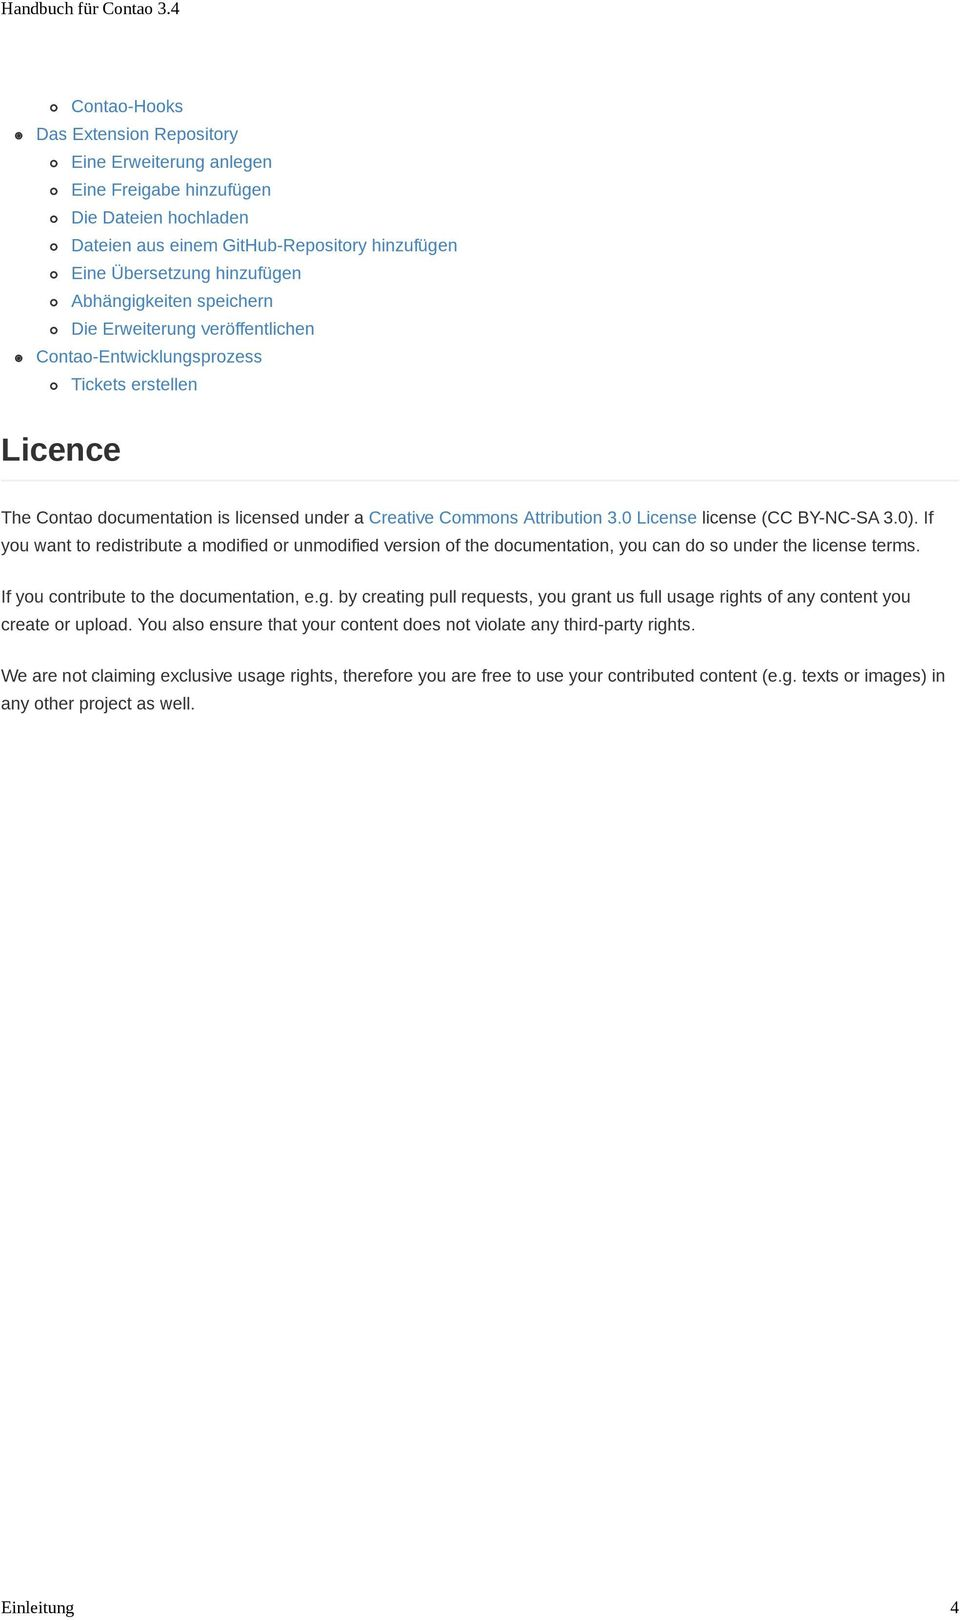 0 License license (CC BY-NC-SA 3.0). If you want to redistribute a modified or unmodified version of the documentation, you can do so under the license terms.